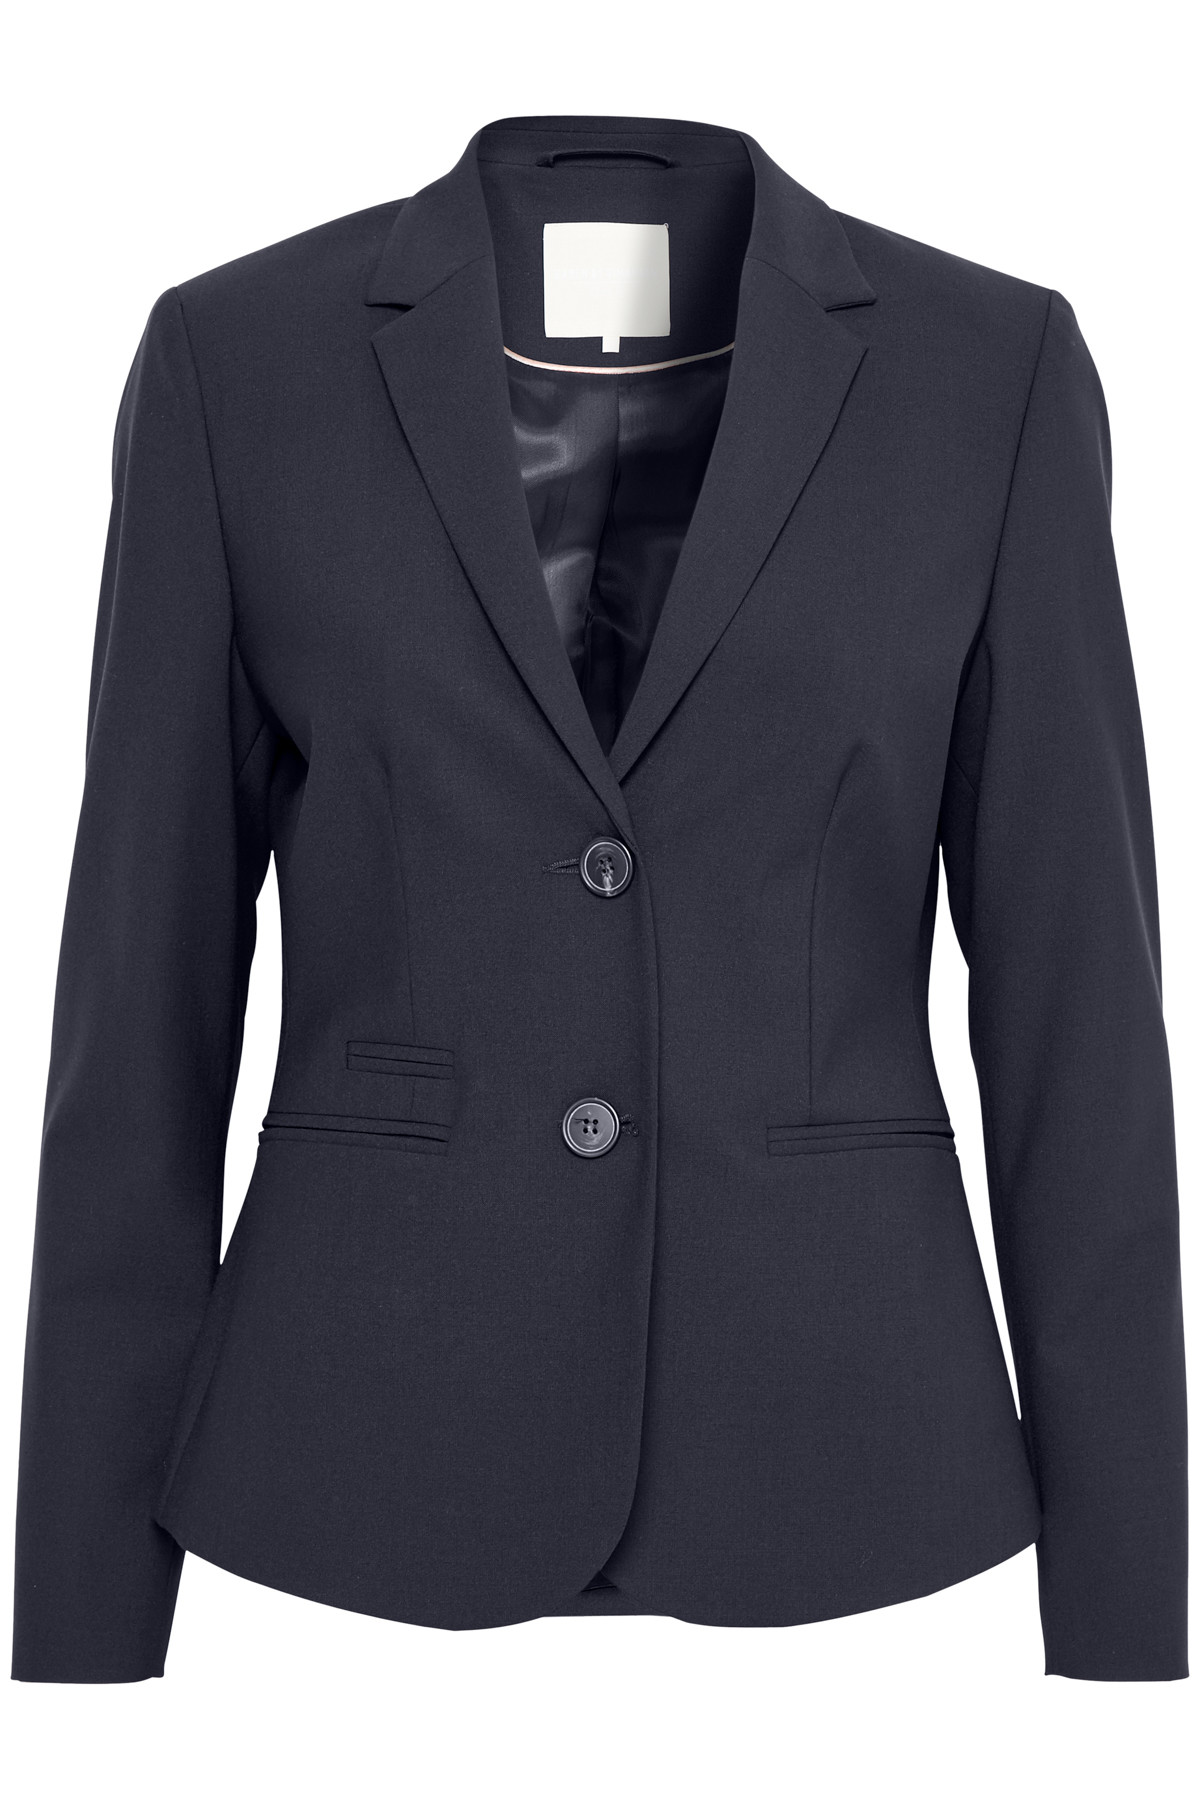 Image of   KAREN BY SIMONSEN SYDNEY BLAZER 10102001 D (Dark Blue 40520, 34)